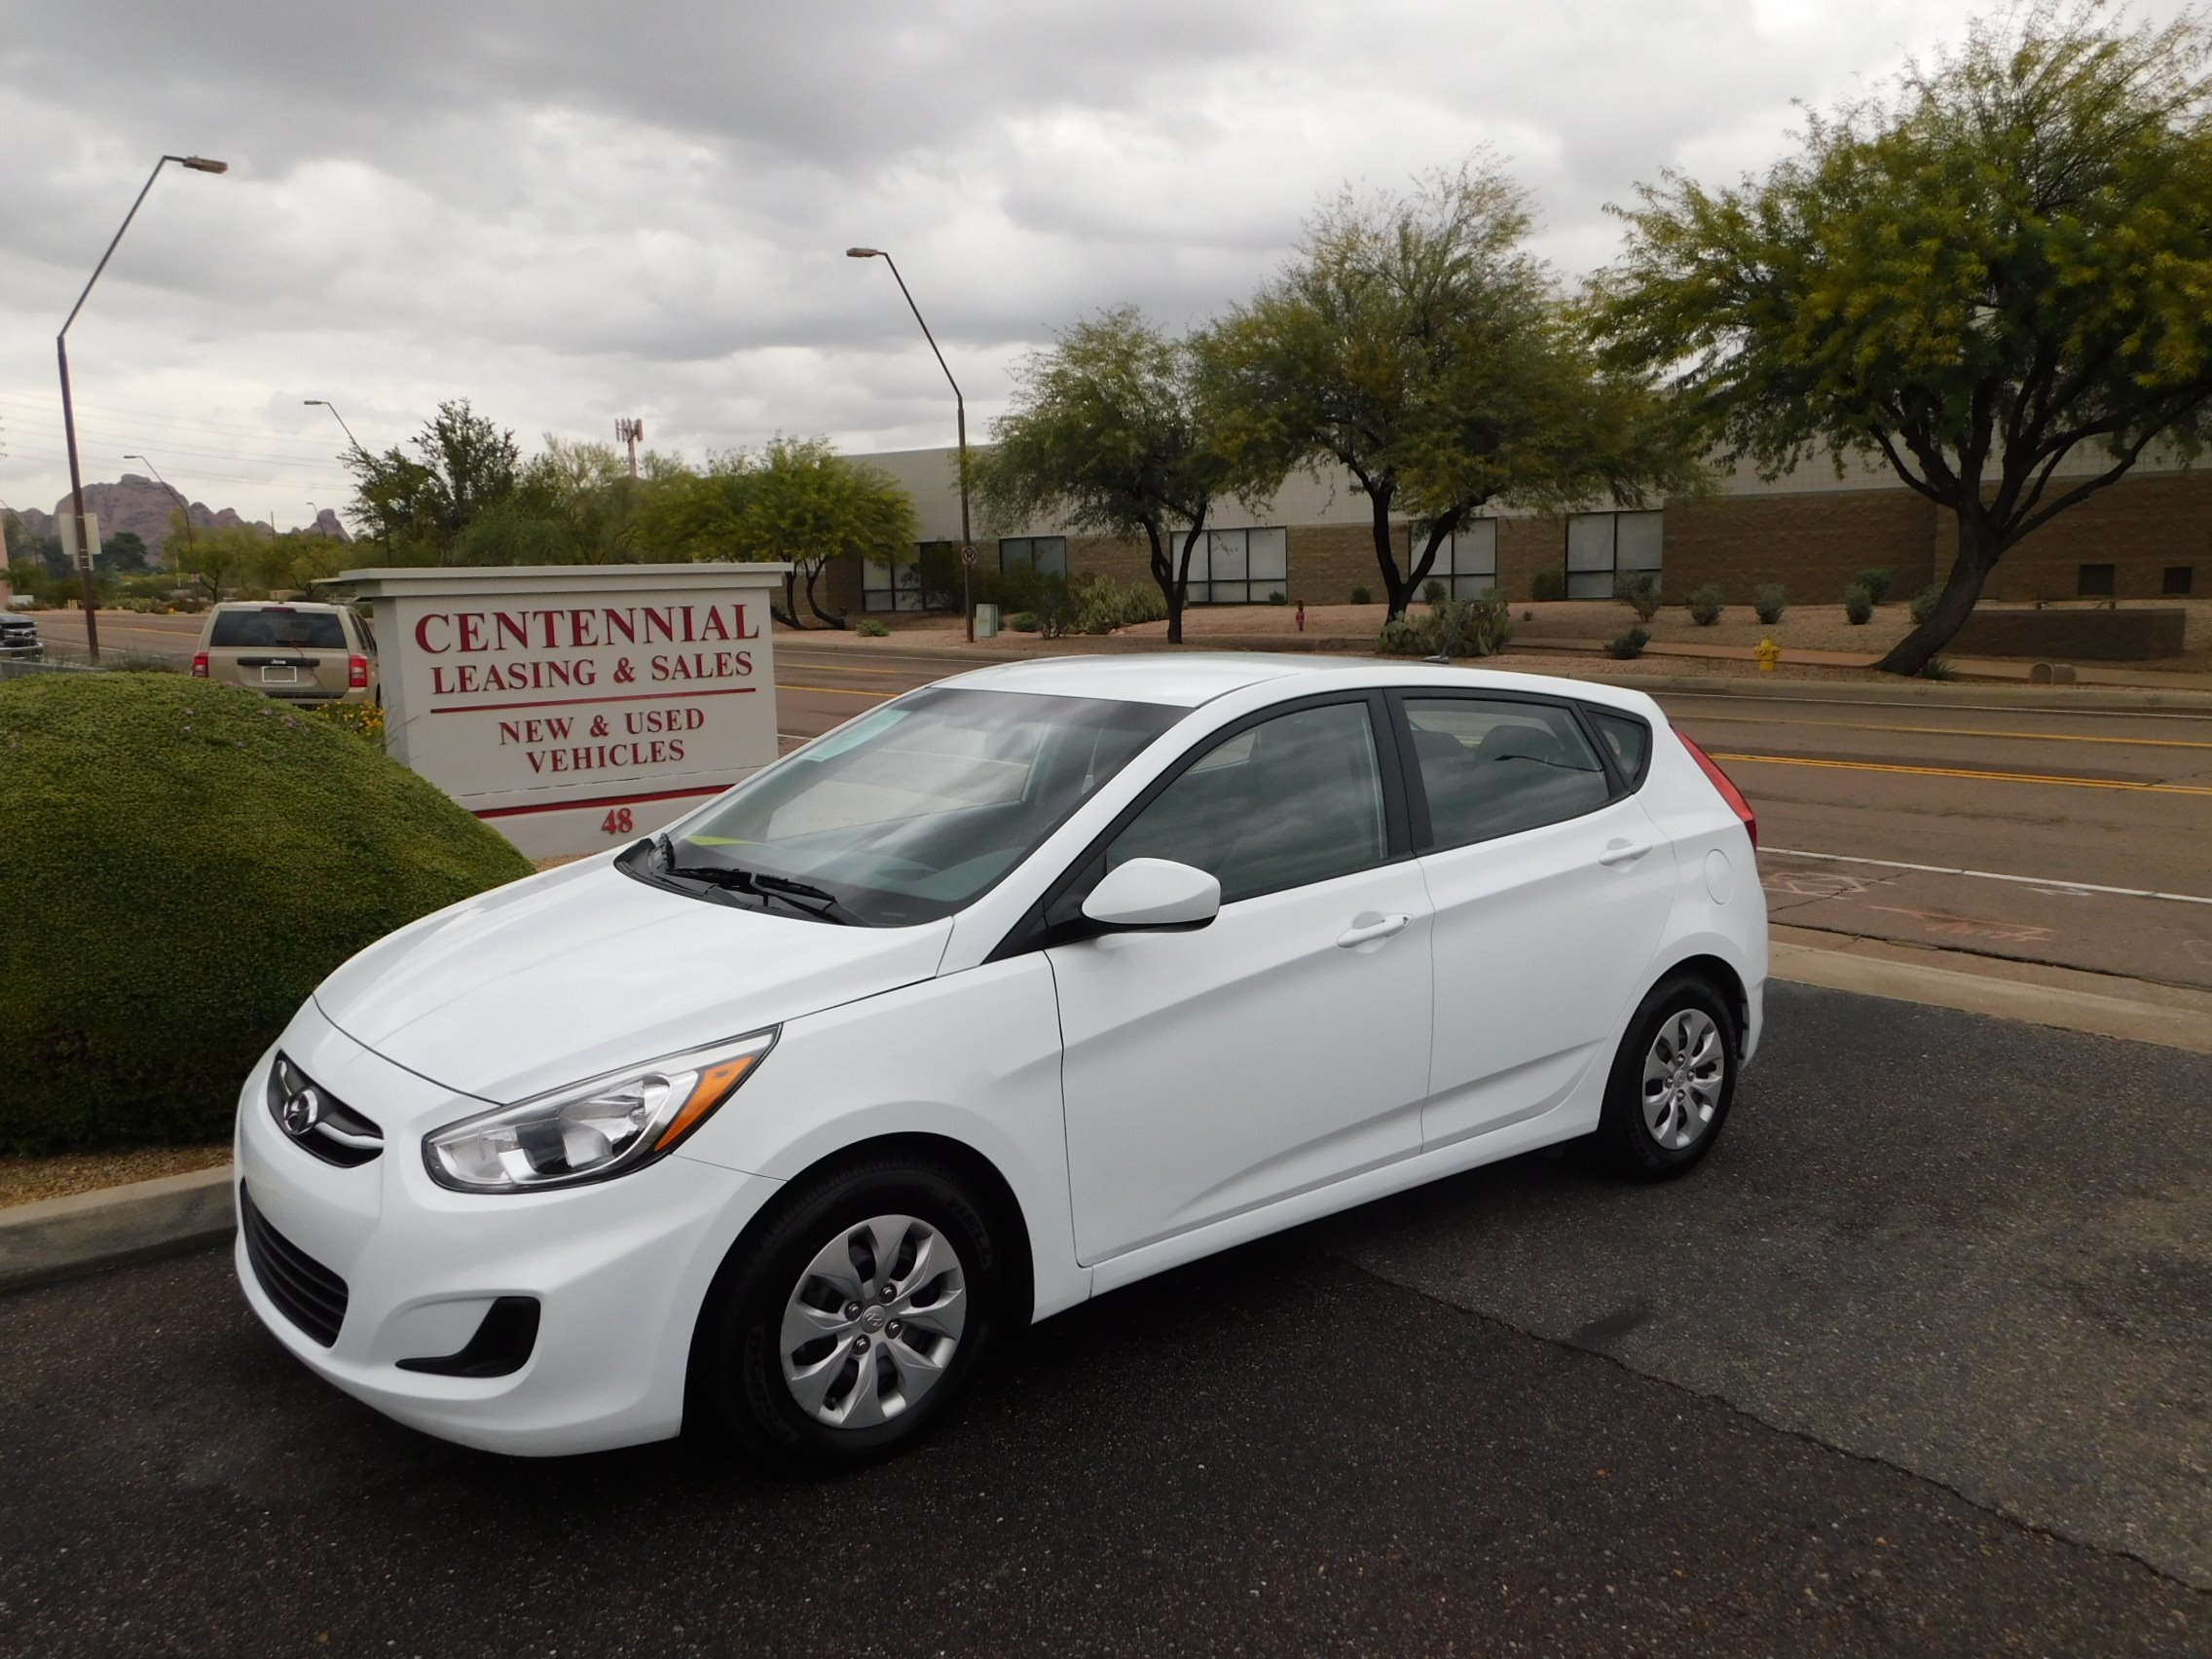 Used Car Listings Best Of Phoenix Used Cars All New Used Car Listings for Arizona